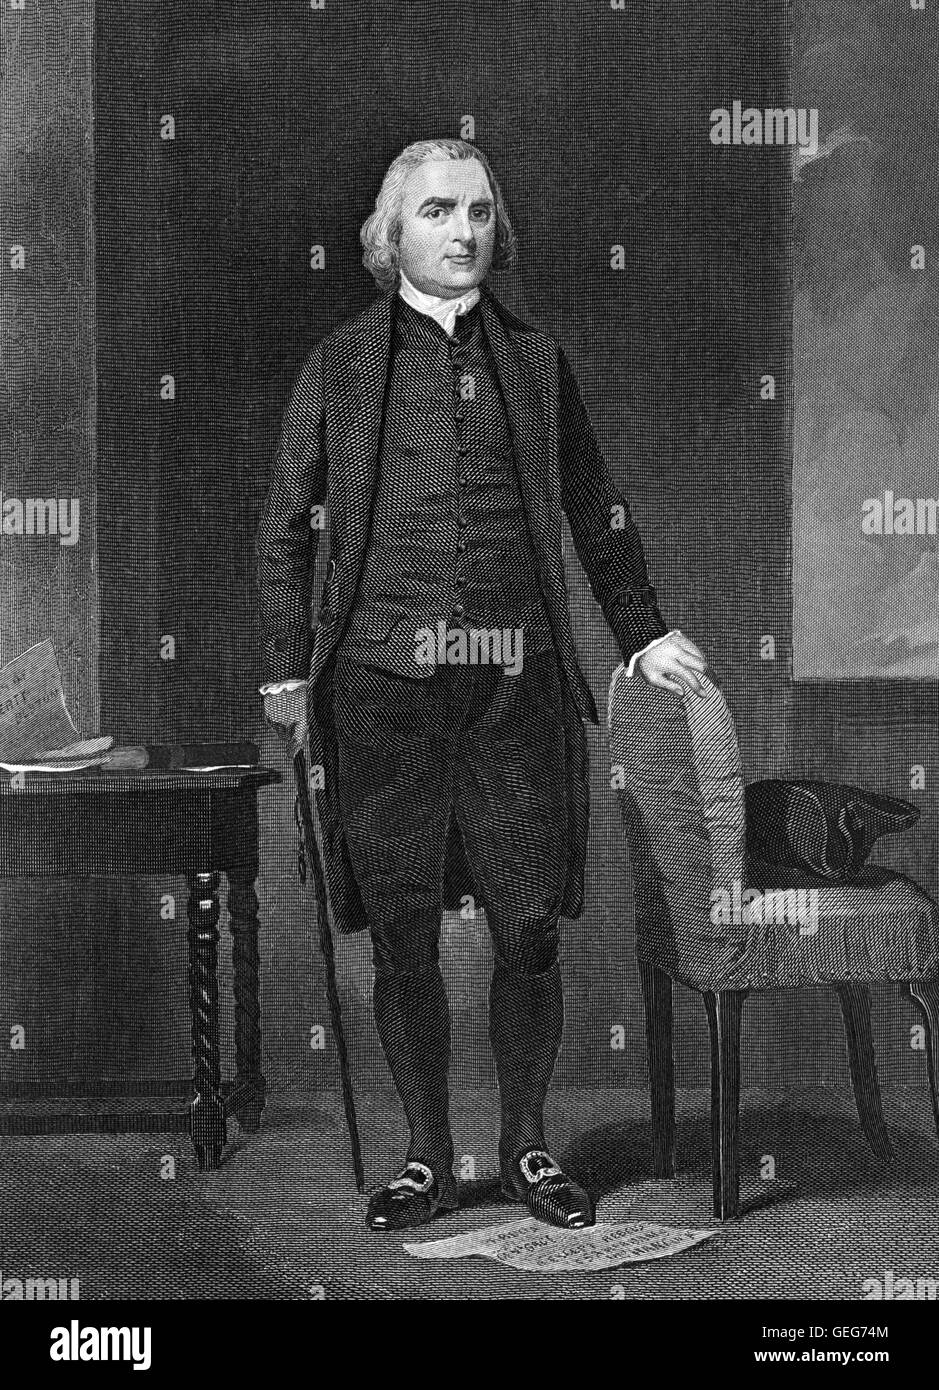 Samuel Adams. Portrait of the american statesman Samuel Adams, engraving from a painting by Alonso Chappel - Stock Image